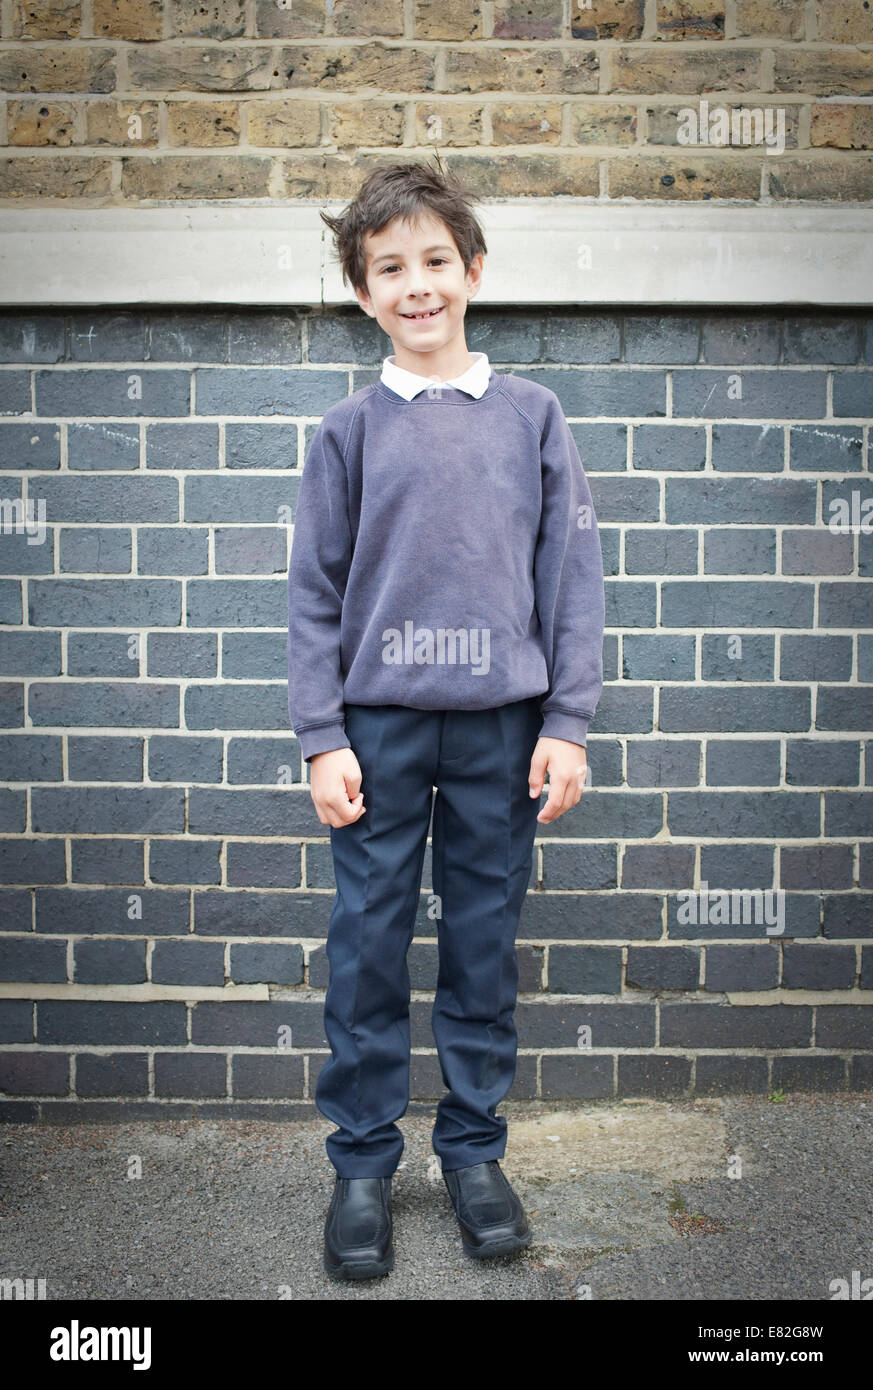 Portrait of boy in playground smiling towards camera Photo Stock